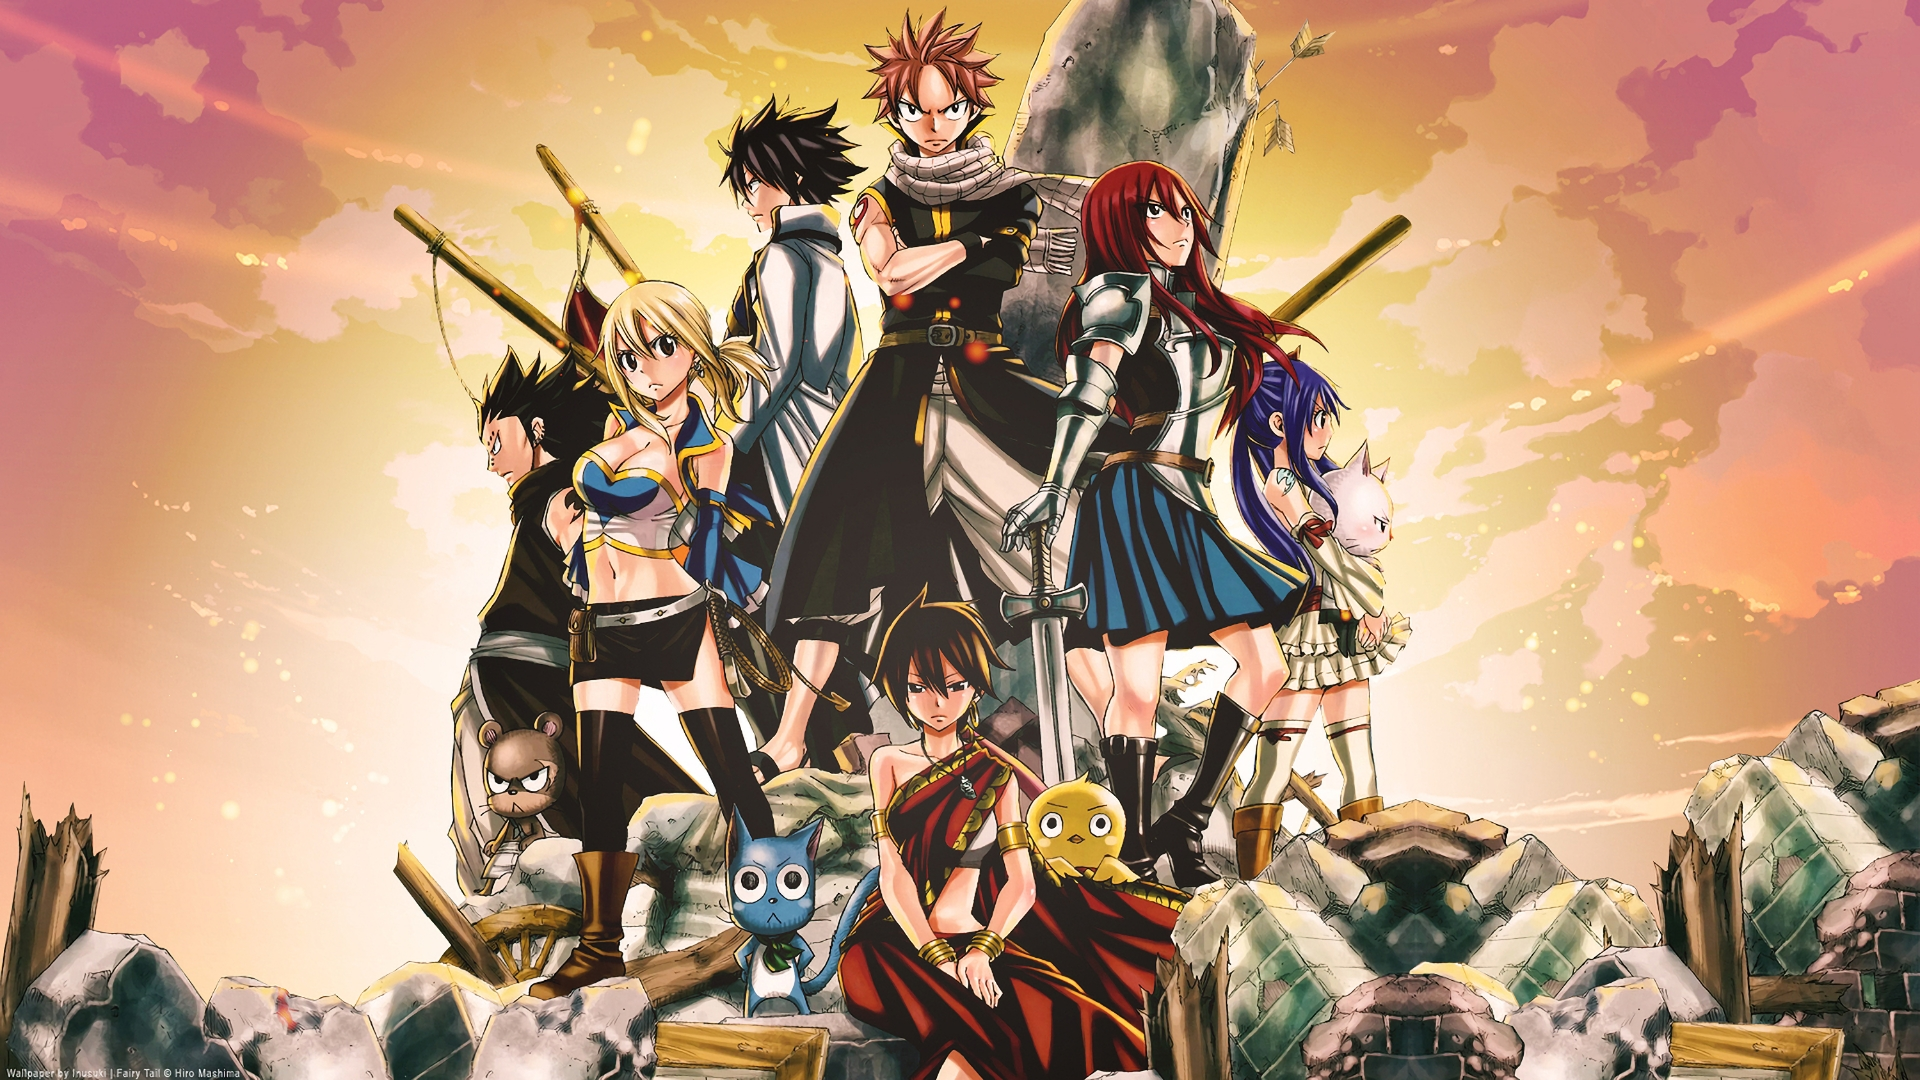 fairy tail the movie: phoenix priestess full hd wallpaper and